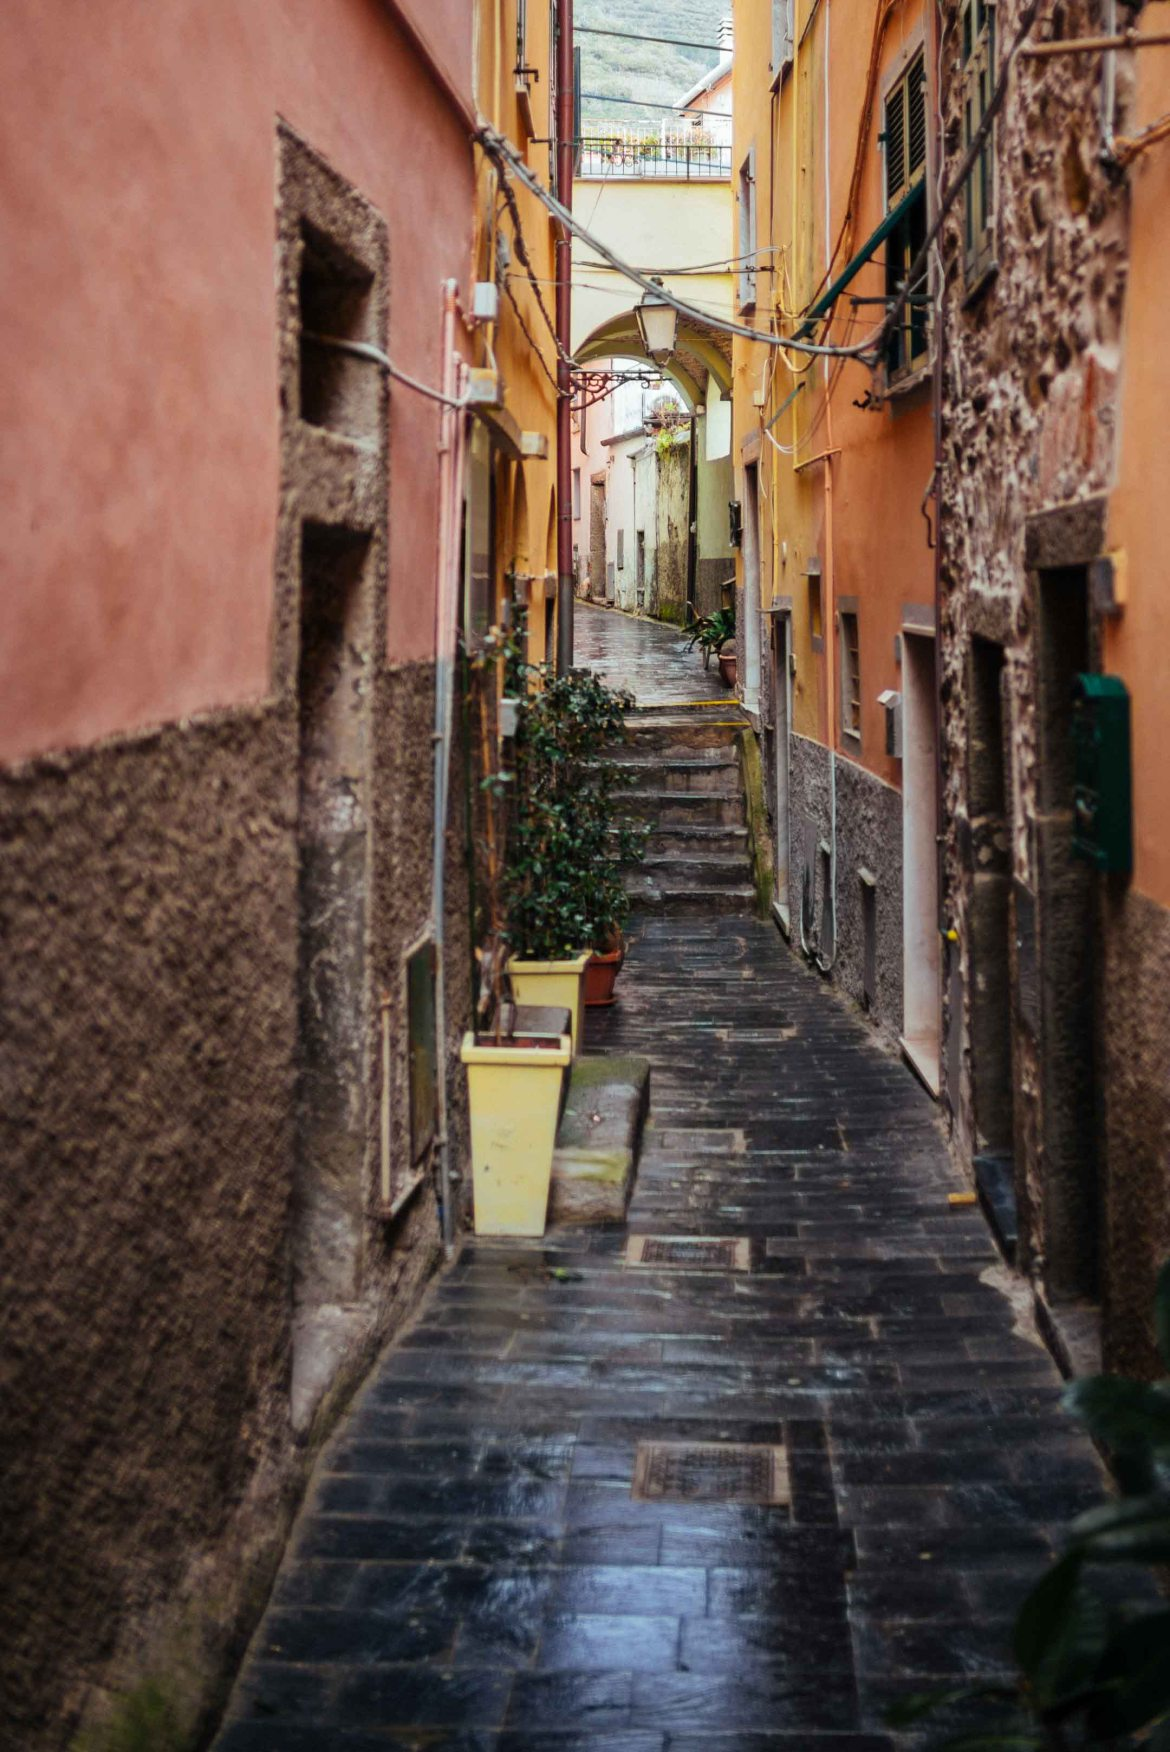 Take this easy path to an amazing wine tasting in Cinque Terre. Get tips from The Taste Edit for your next visit.